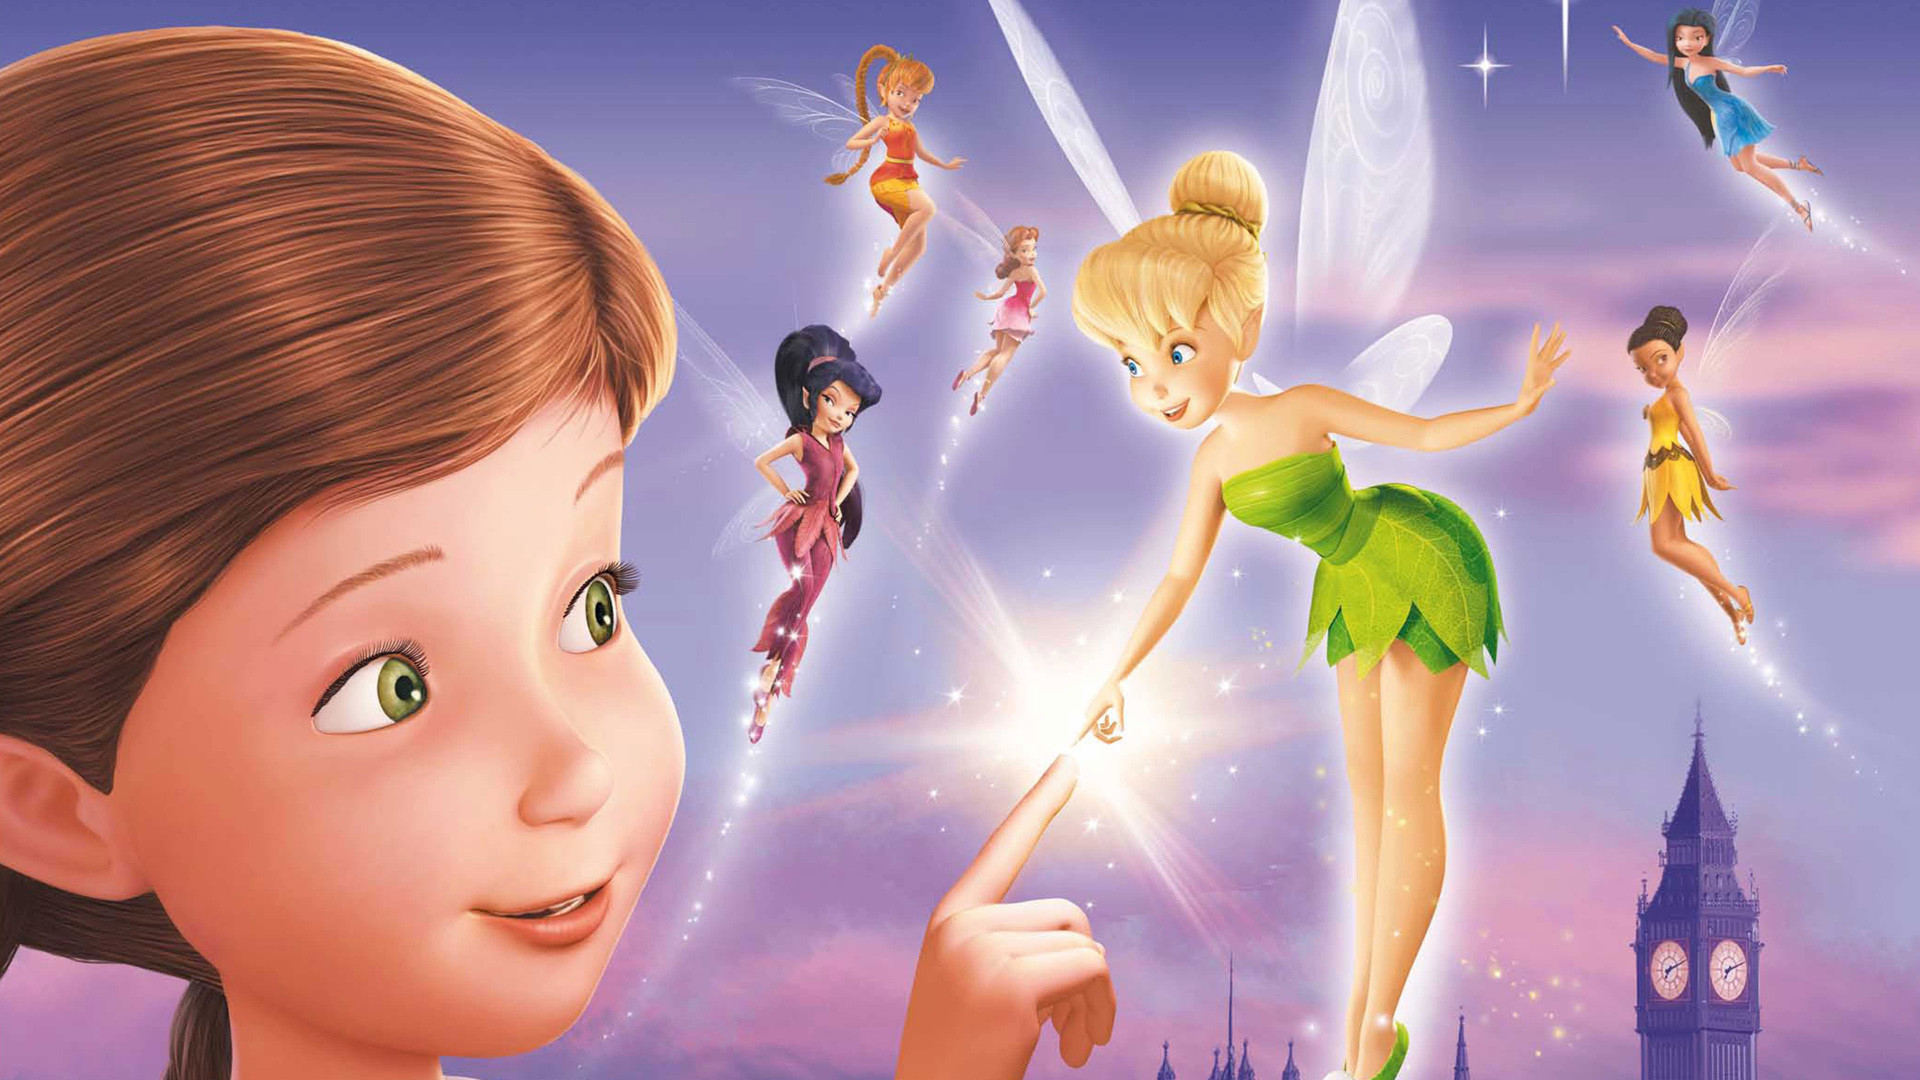 Res: 1920x1080, Movie Review – Tinker Bell & The Great Fairy Rescue (Mini Review)